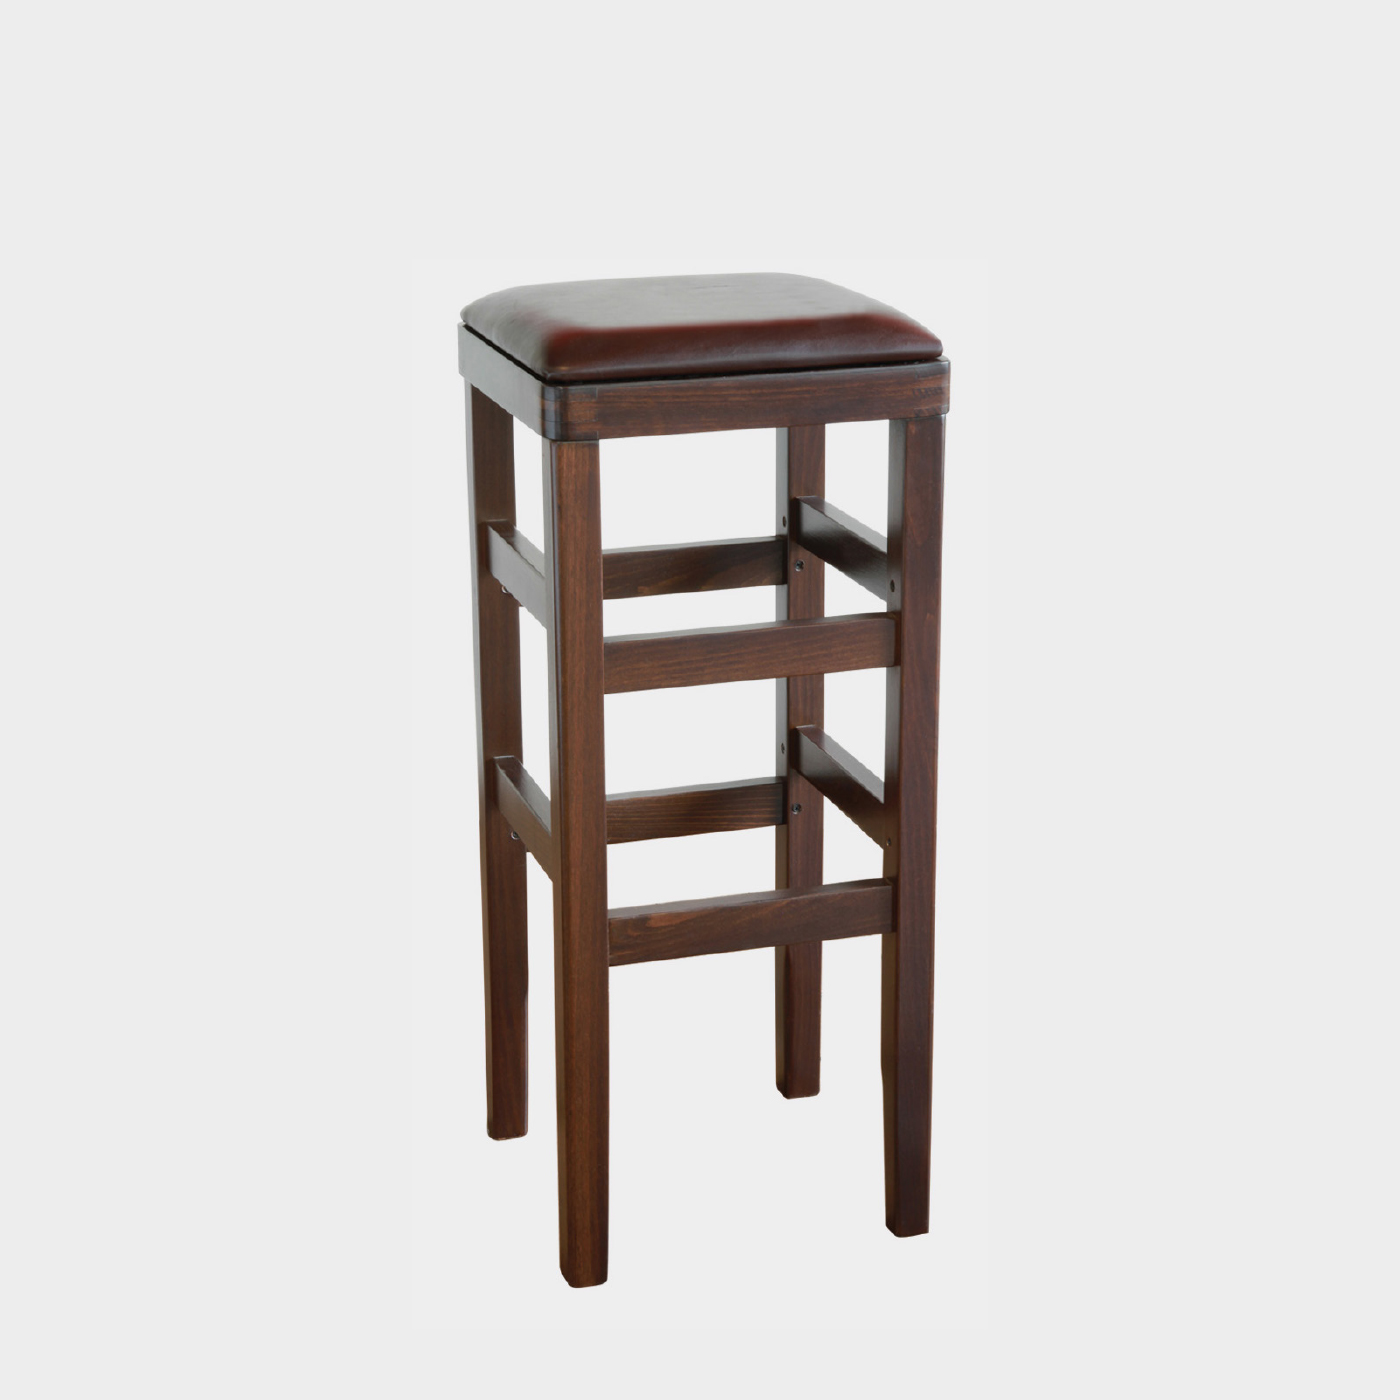 Marvelous Square Barstool Thonet Caraccident5 Cool Chair Designs And Ideas Caraccident5Info